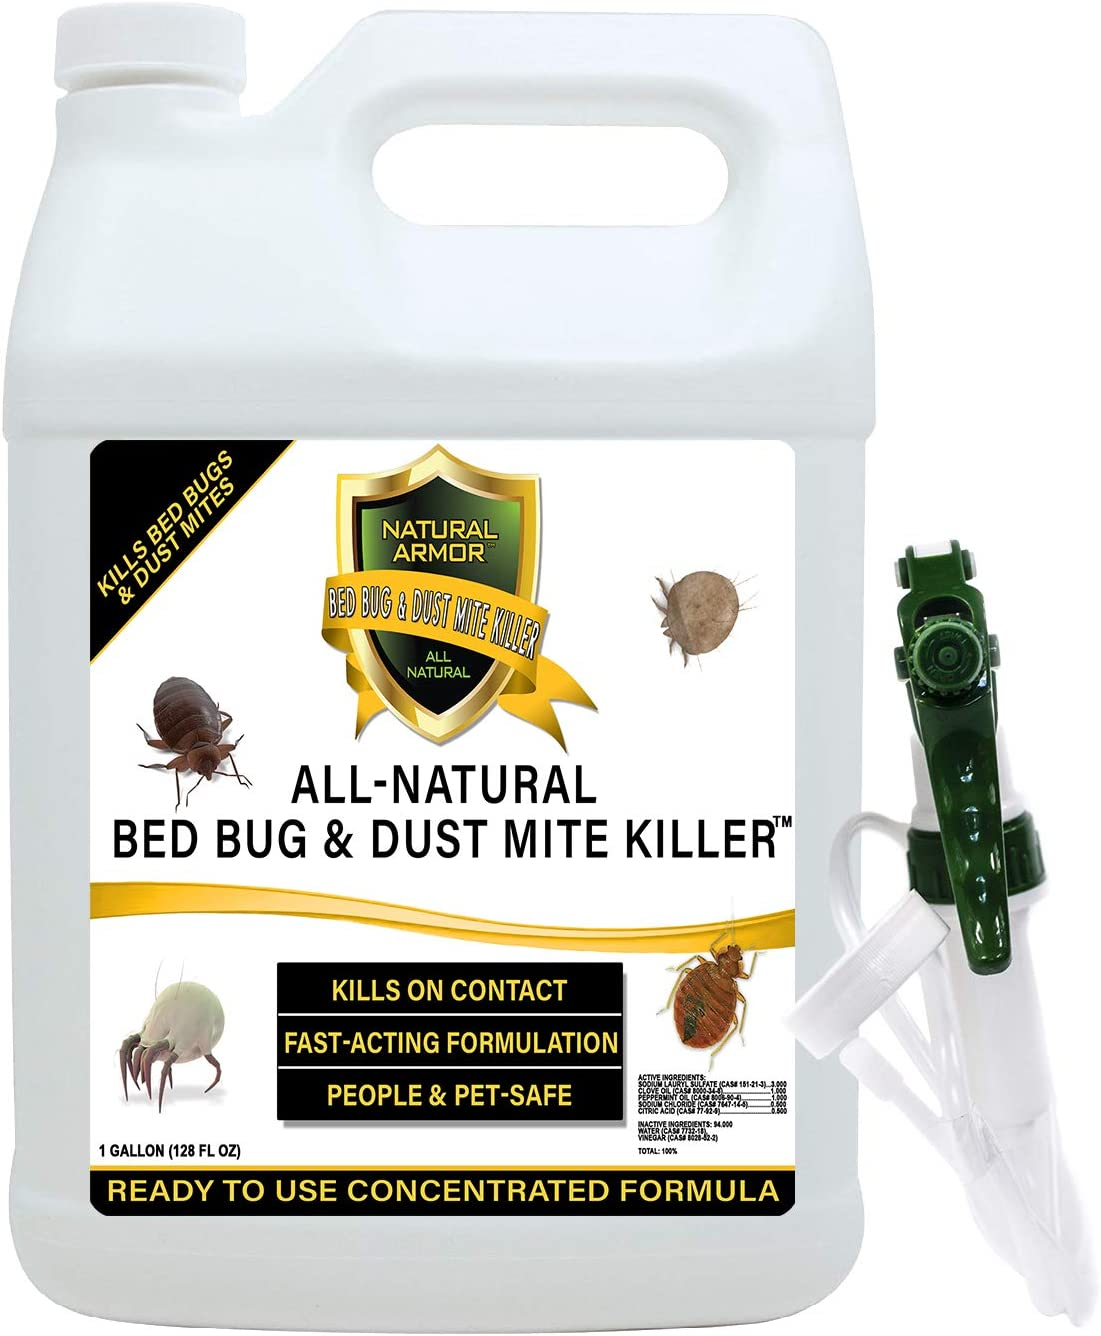 Bed Bug & Dust Mite Killer Natural Spray Treatment for Mattresses, Covers, Carpets & Furniture - Fast Extended Protection. Pet & Kids Safe - No Toxins or Chemicals 128 oz Gallon